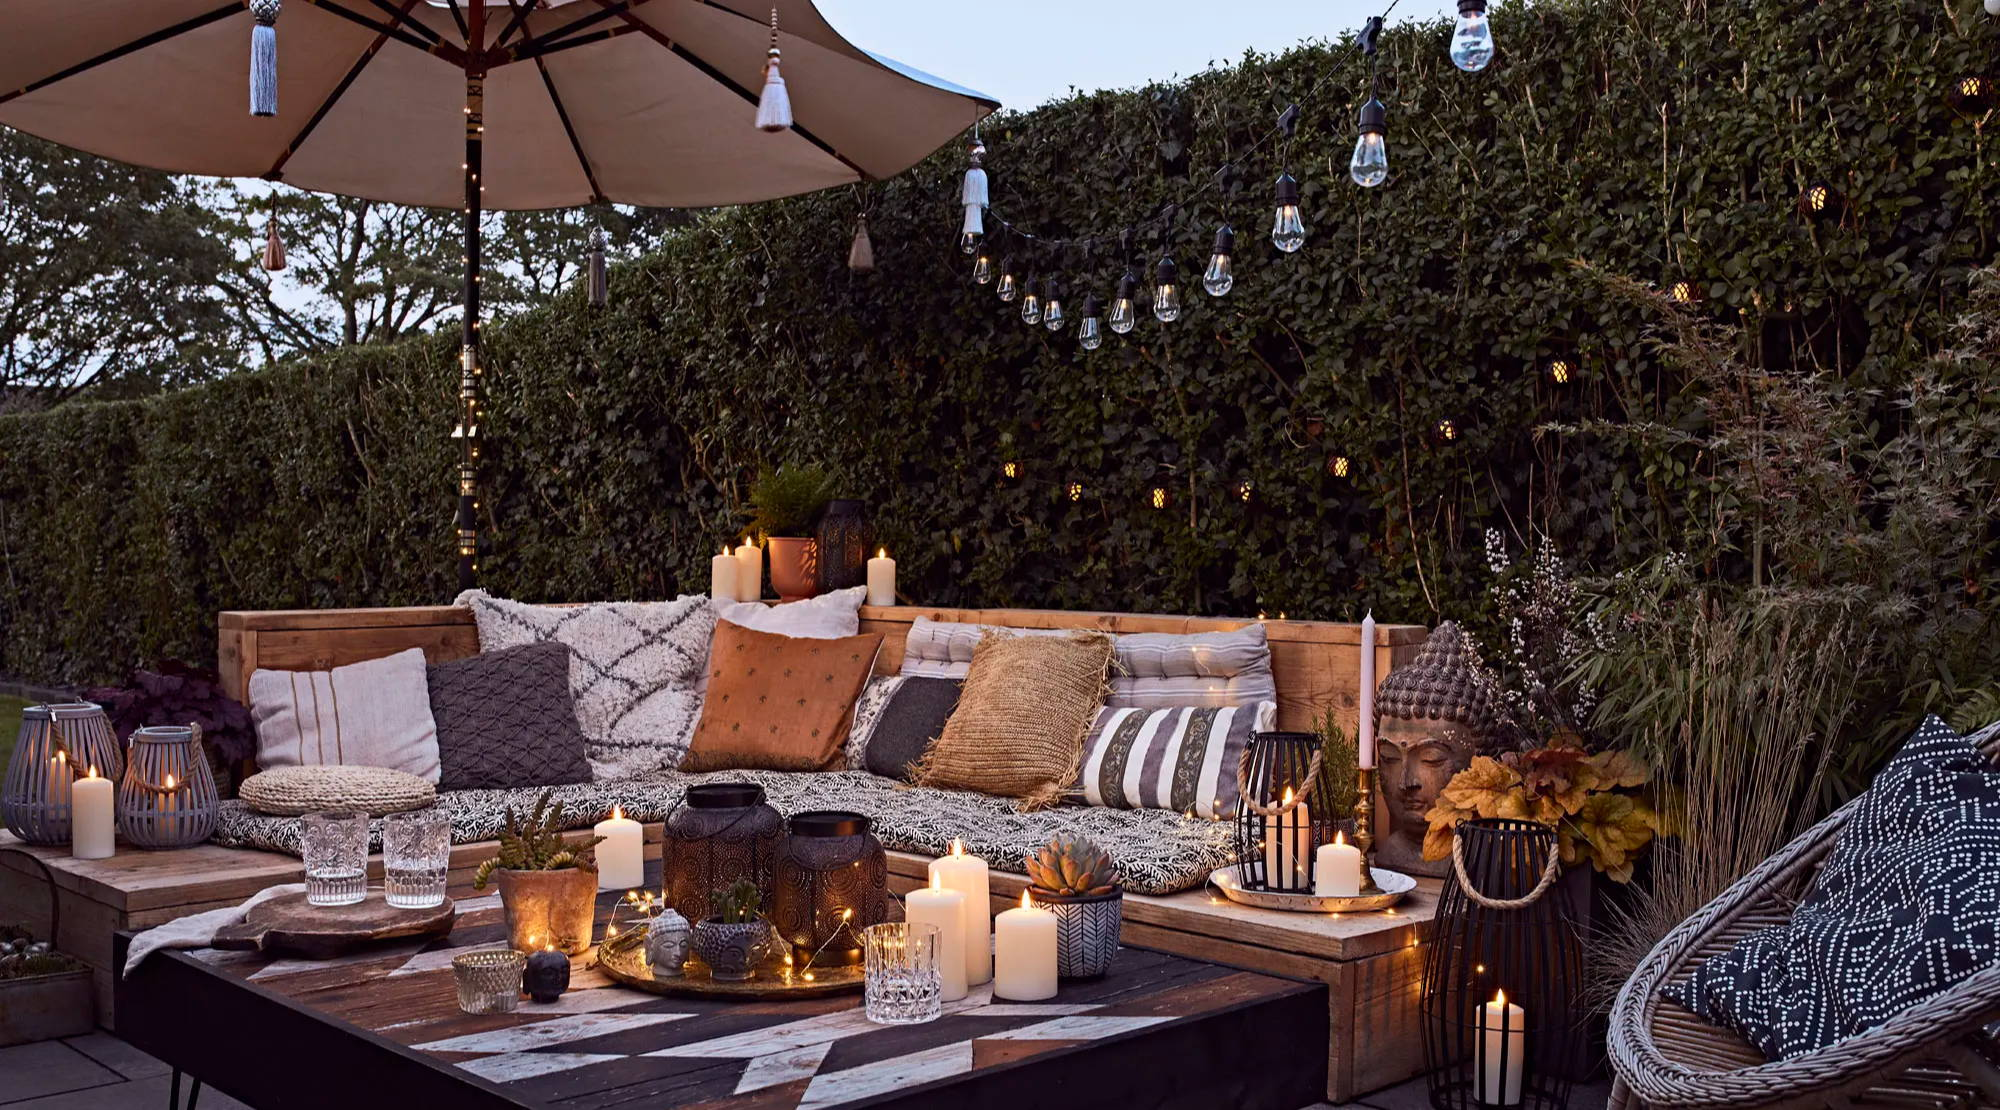 Outdoor space illuminated at night by festoons, candles and lanterns.